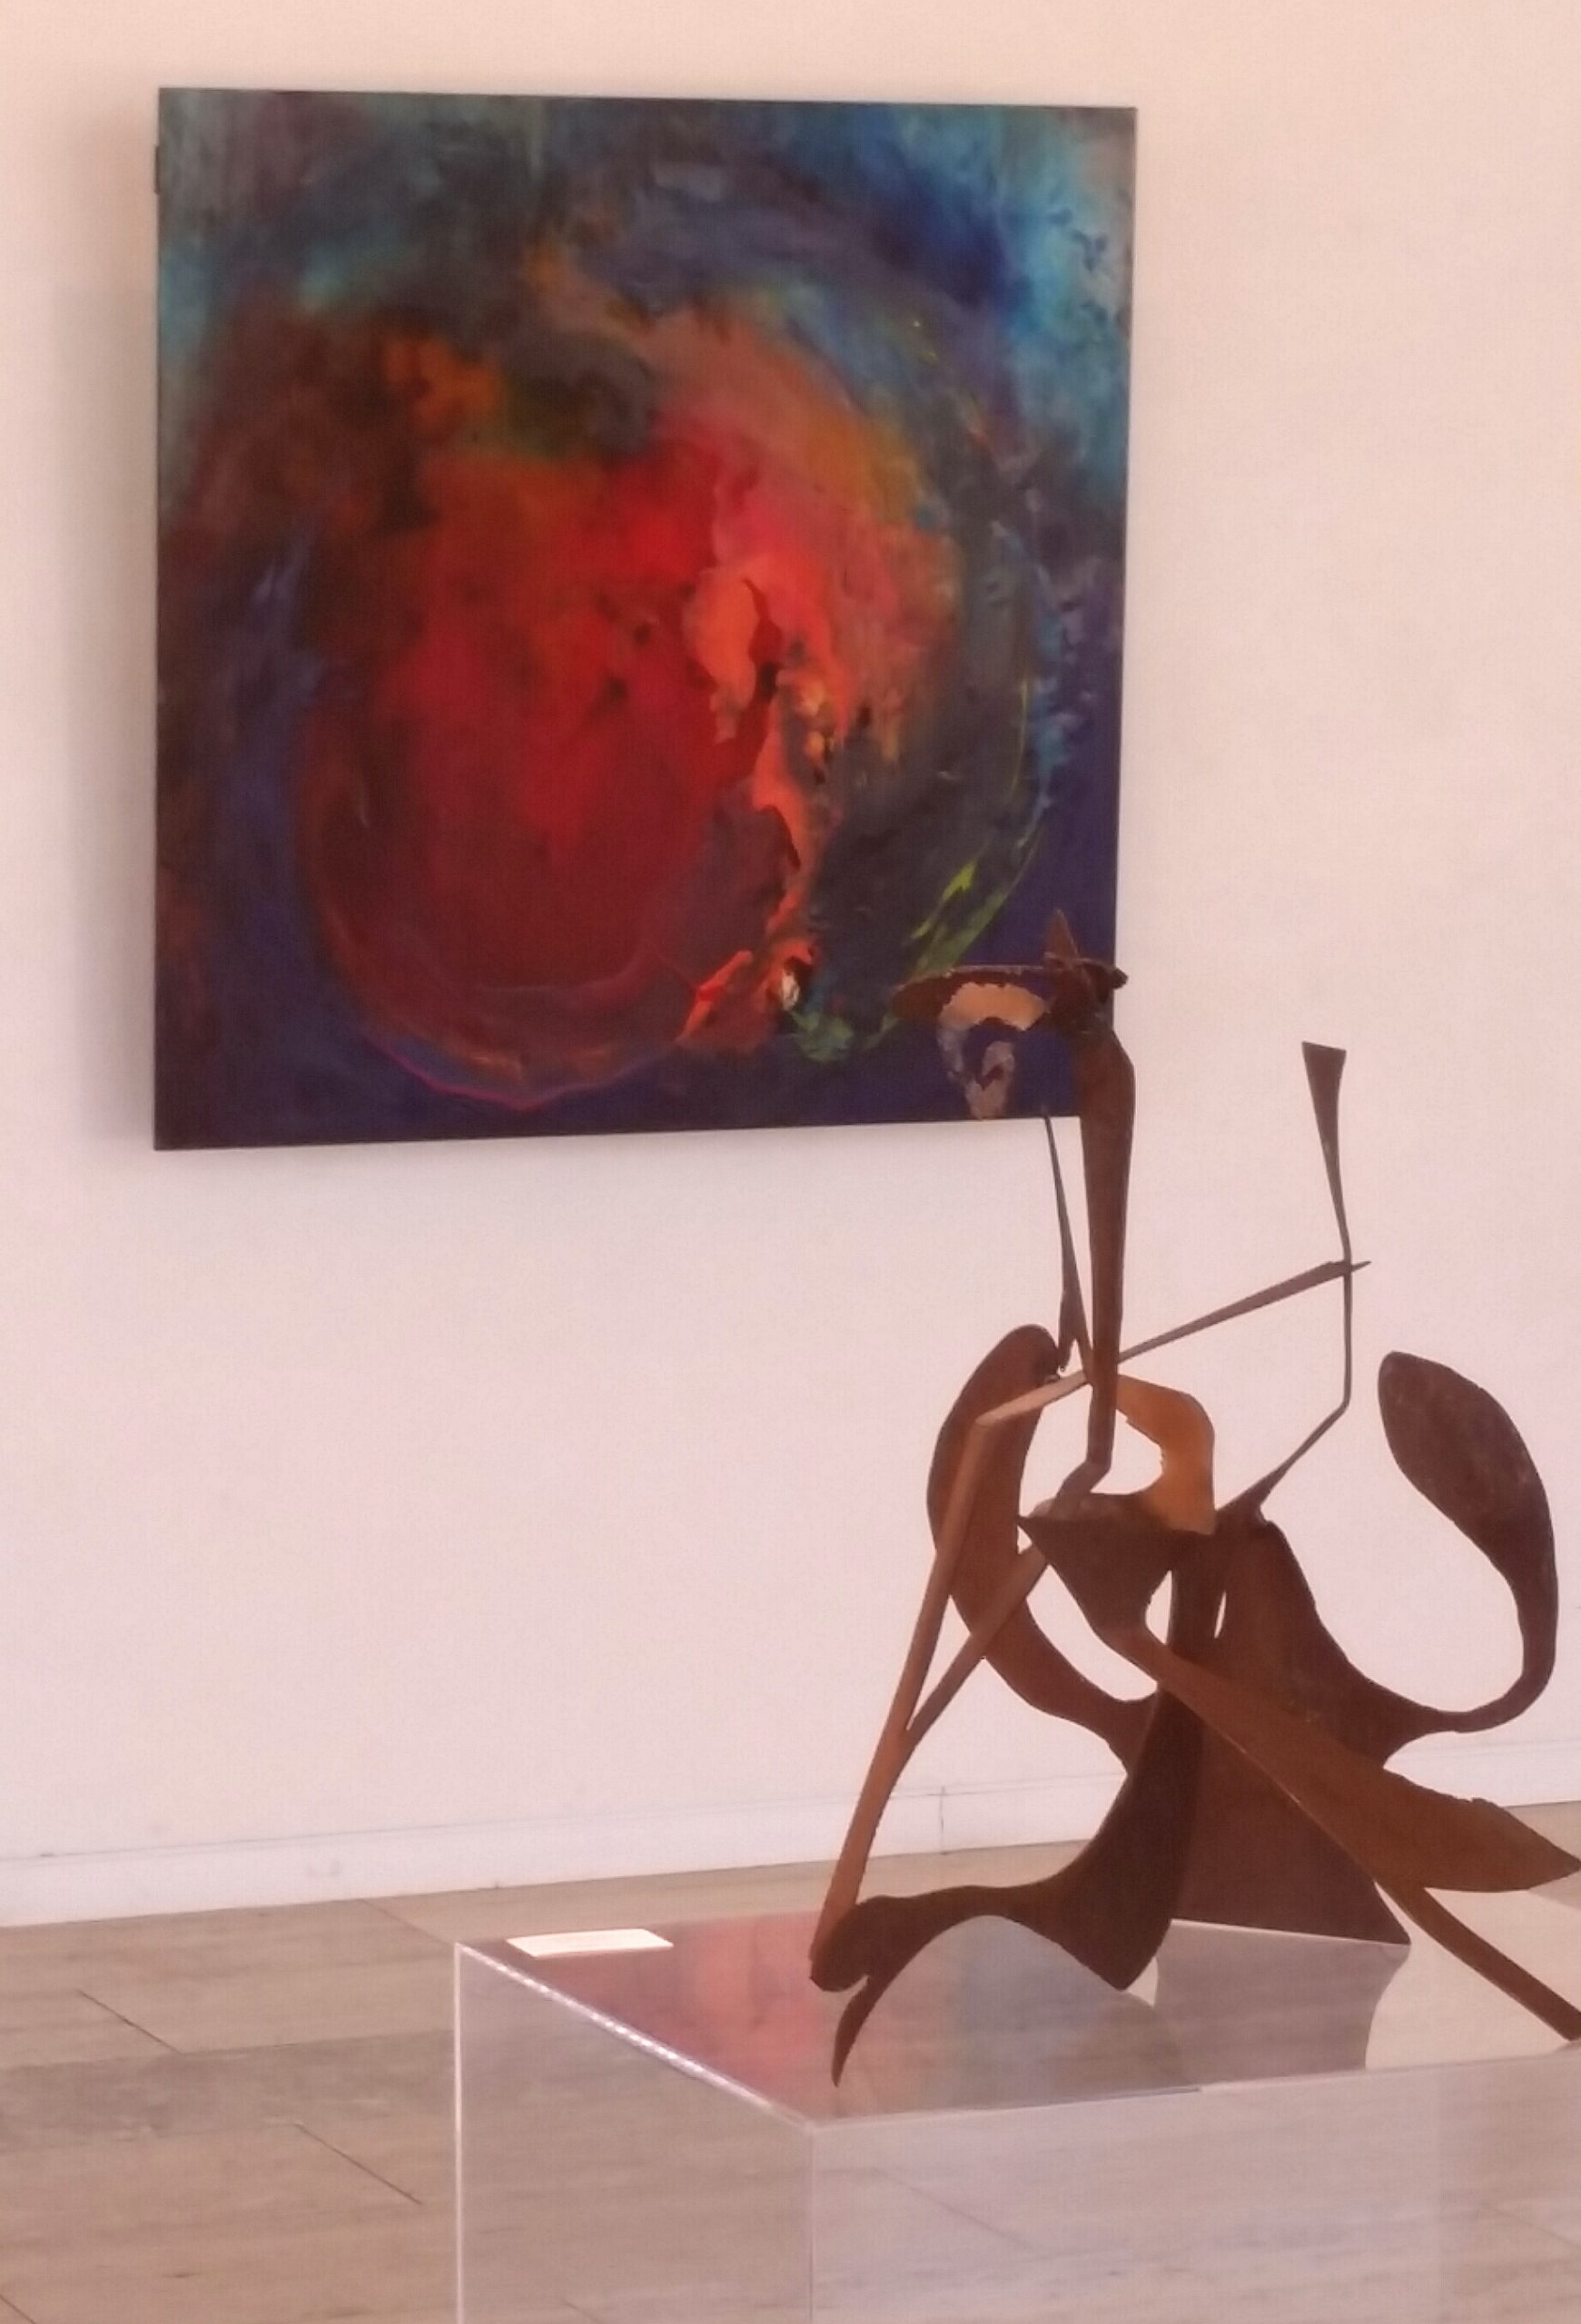 """Collective Show at El Palmeral Pier 2 in Malaga – Showing """"Big Apple Sanctuary"""" December 2016- January 2017"""